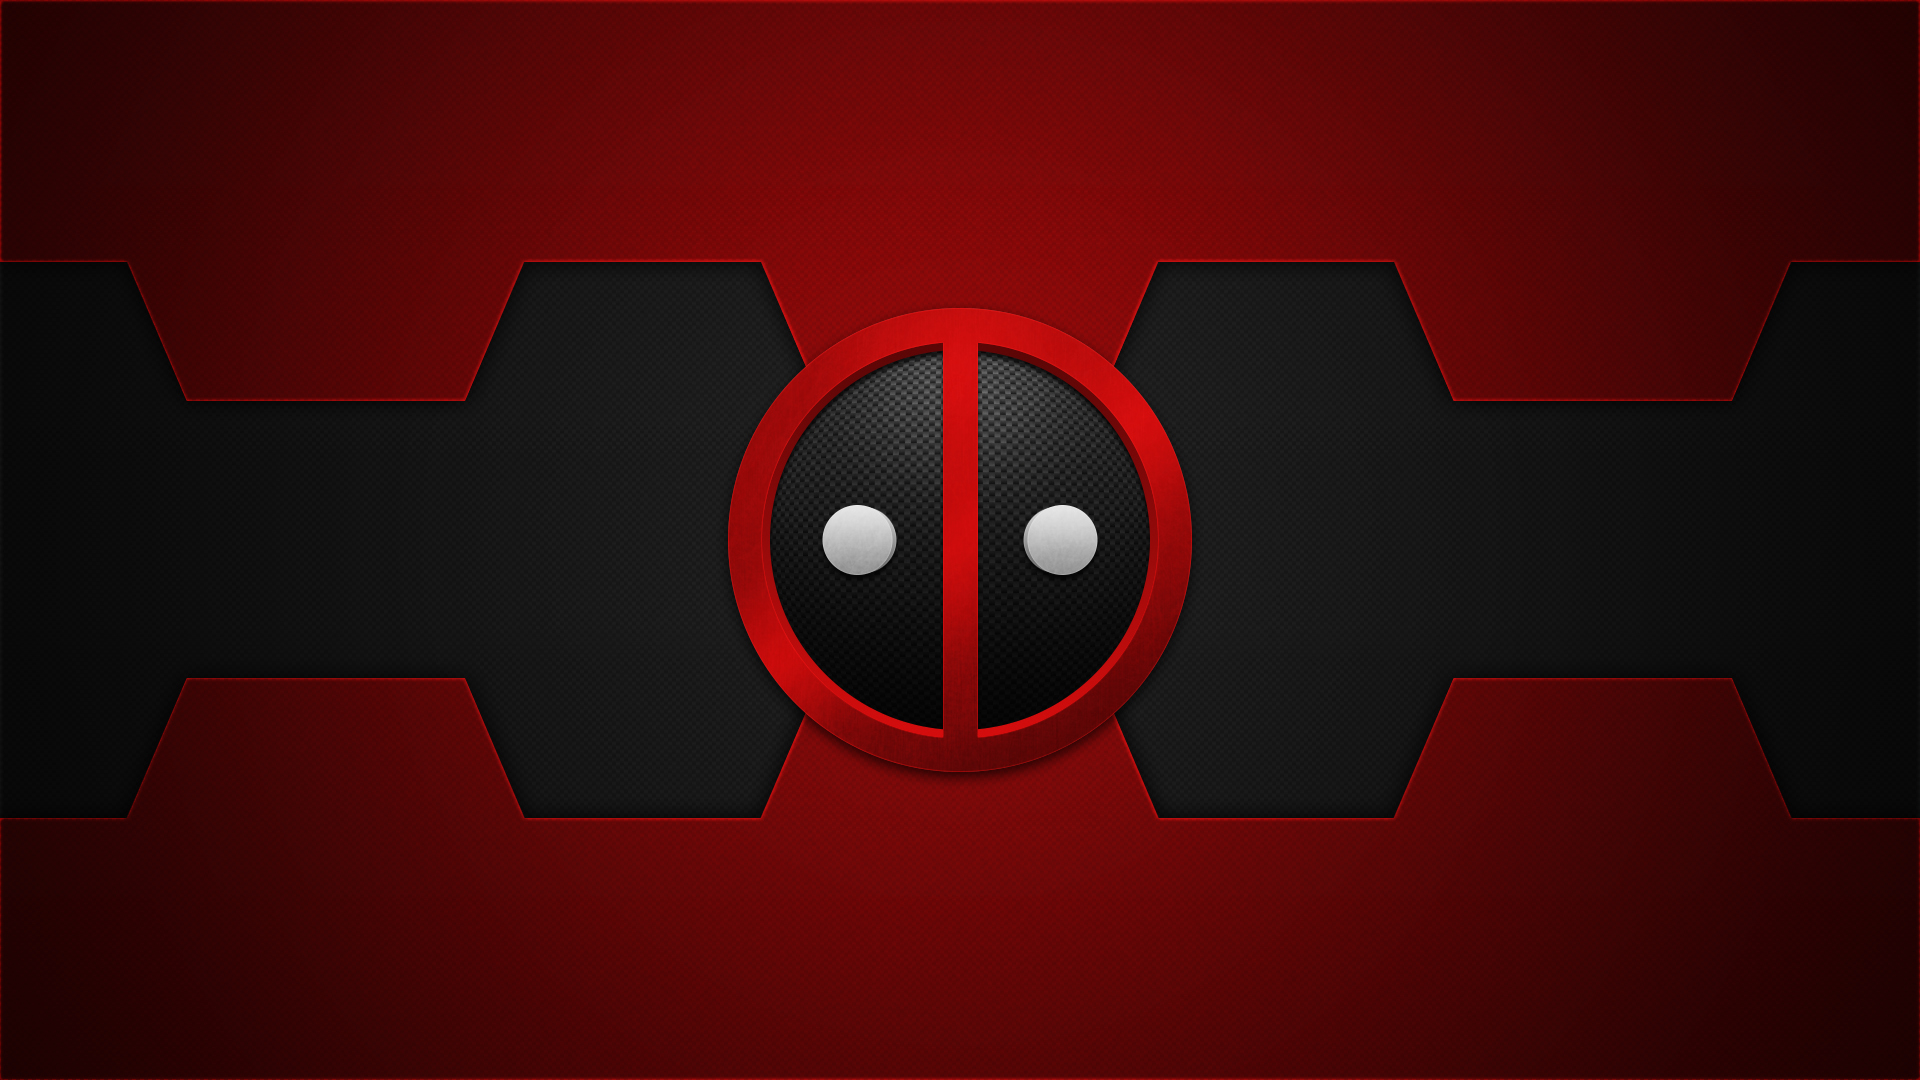 Magnificent-Deadpool-Wallpaper